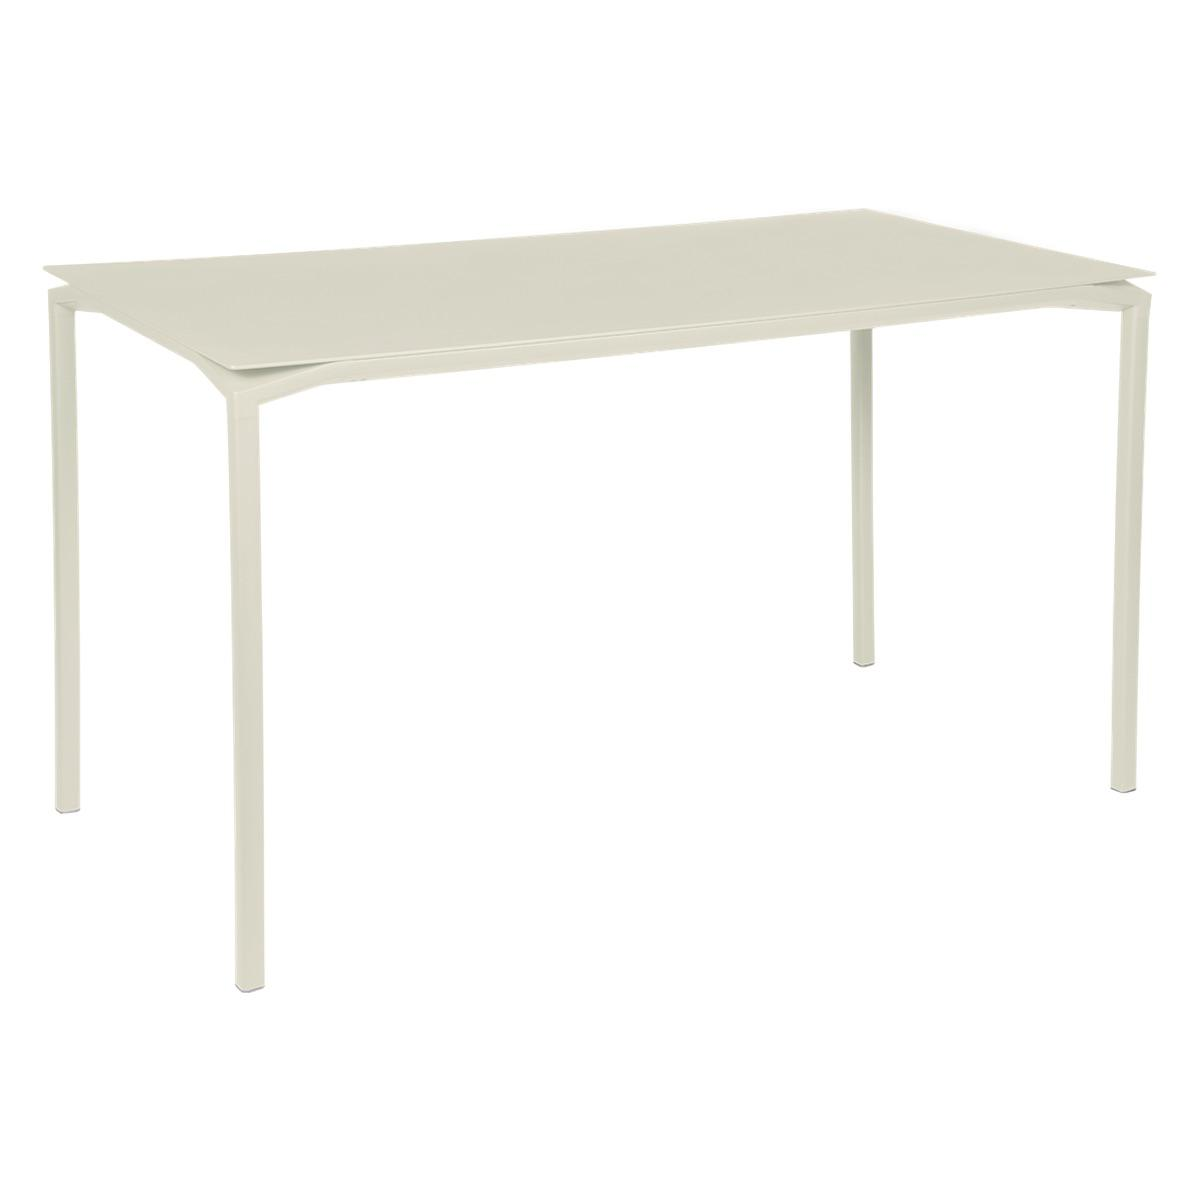 Table 80x160cm CALVI Fermob gris argile